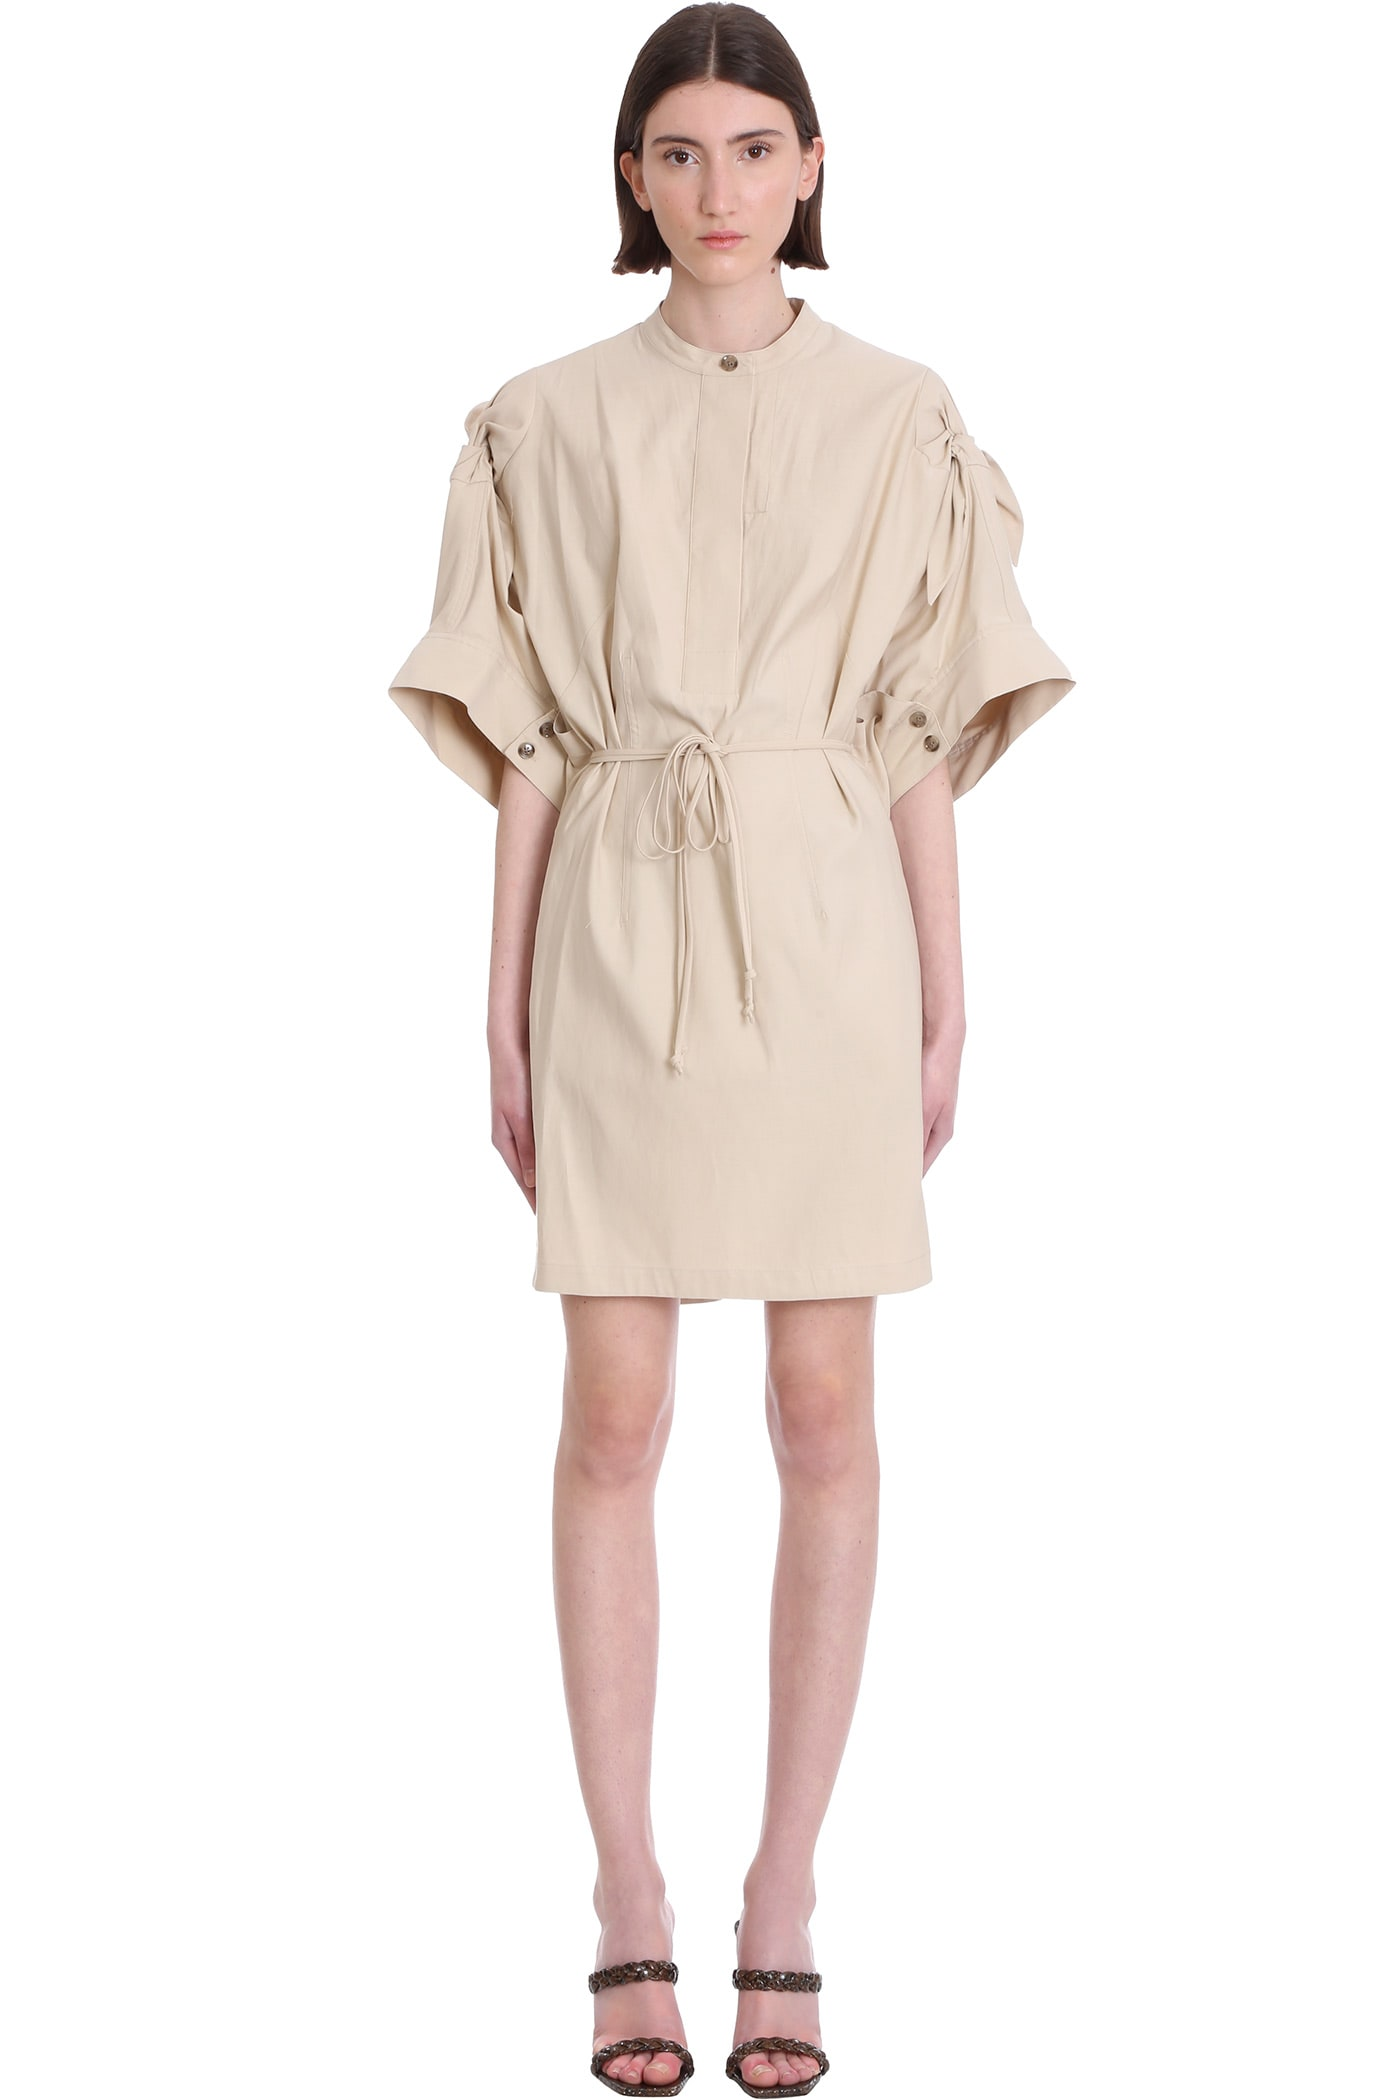 Buy 3.1 Phillip Lim Dress In Beige Cotton online, shop 3.1 Phillip Lim with free shipping